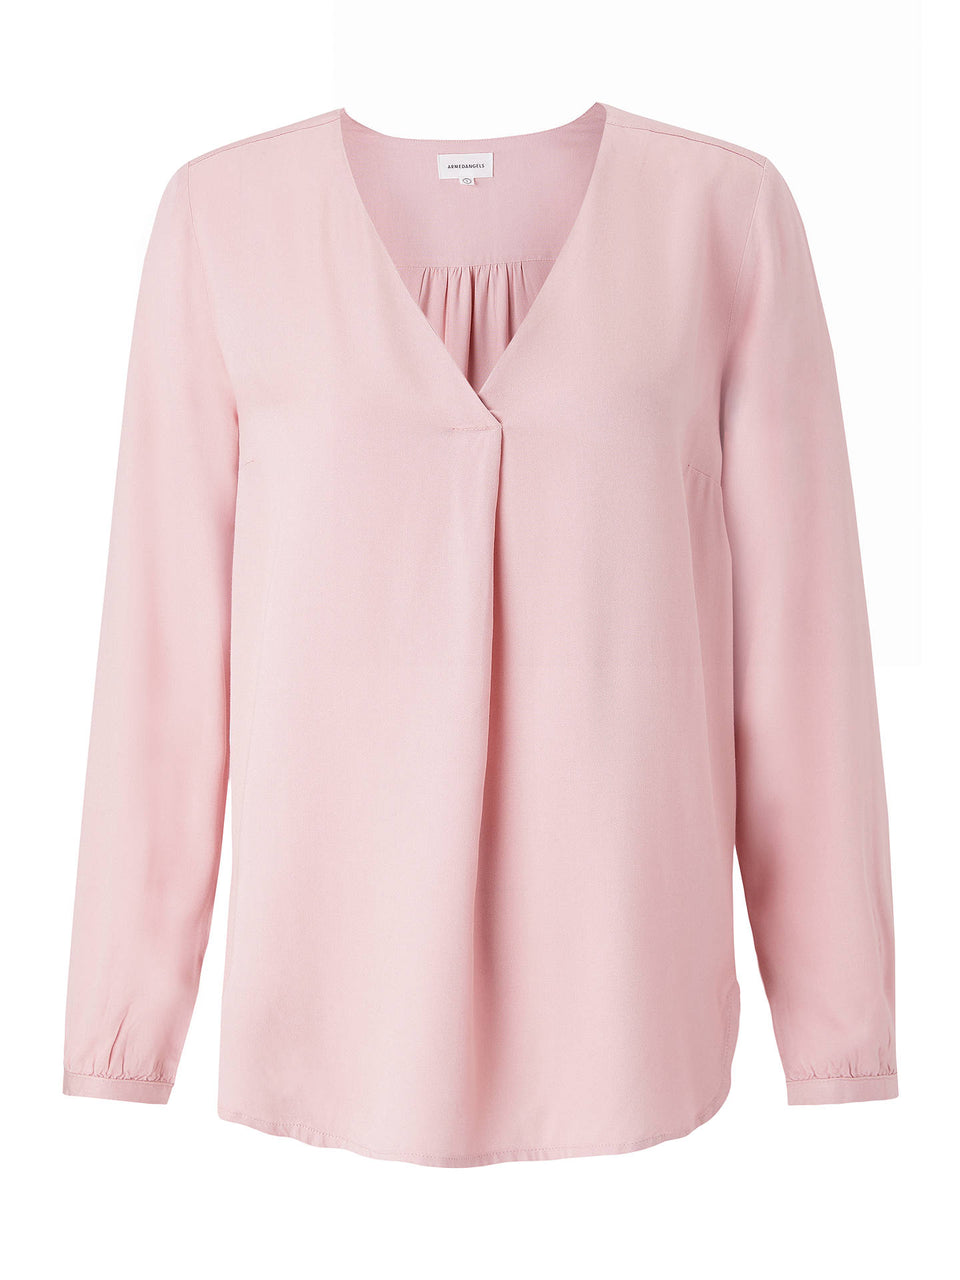 Felicitaas Blouse in Blush